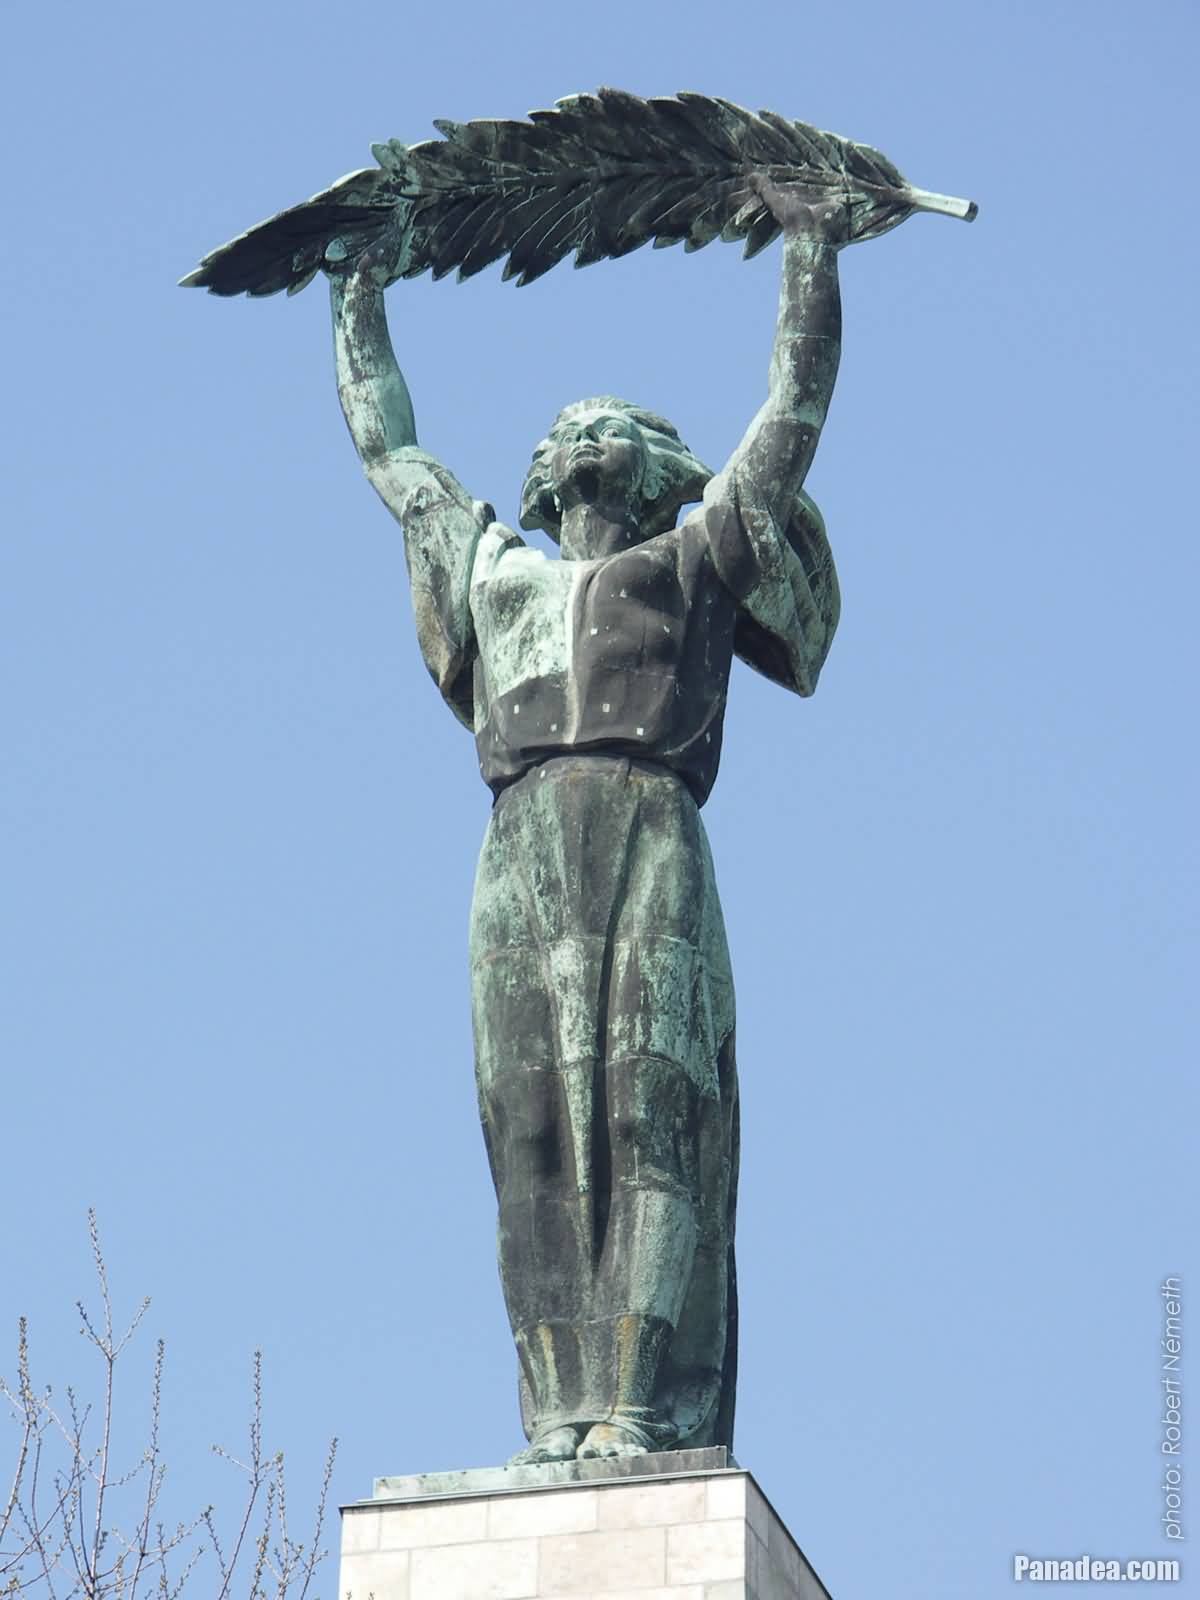 closeup of the liberty statue in budapest